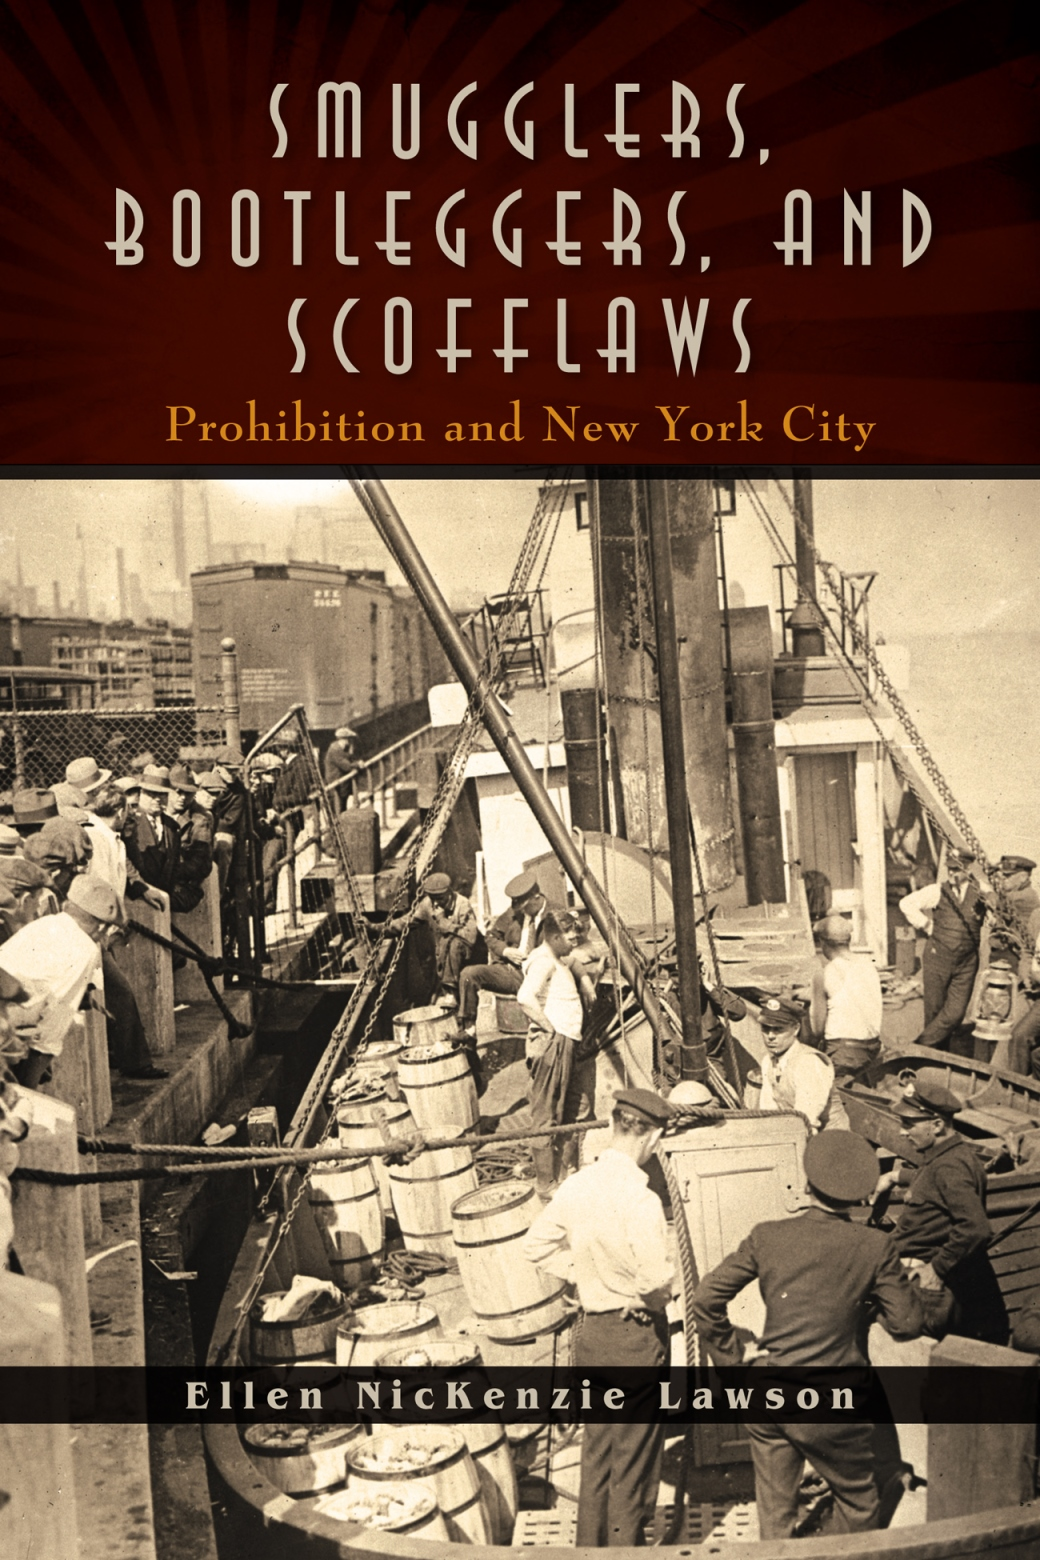 Smugglers, Bootleggers, and Scofflaws, Conrad review